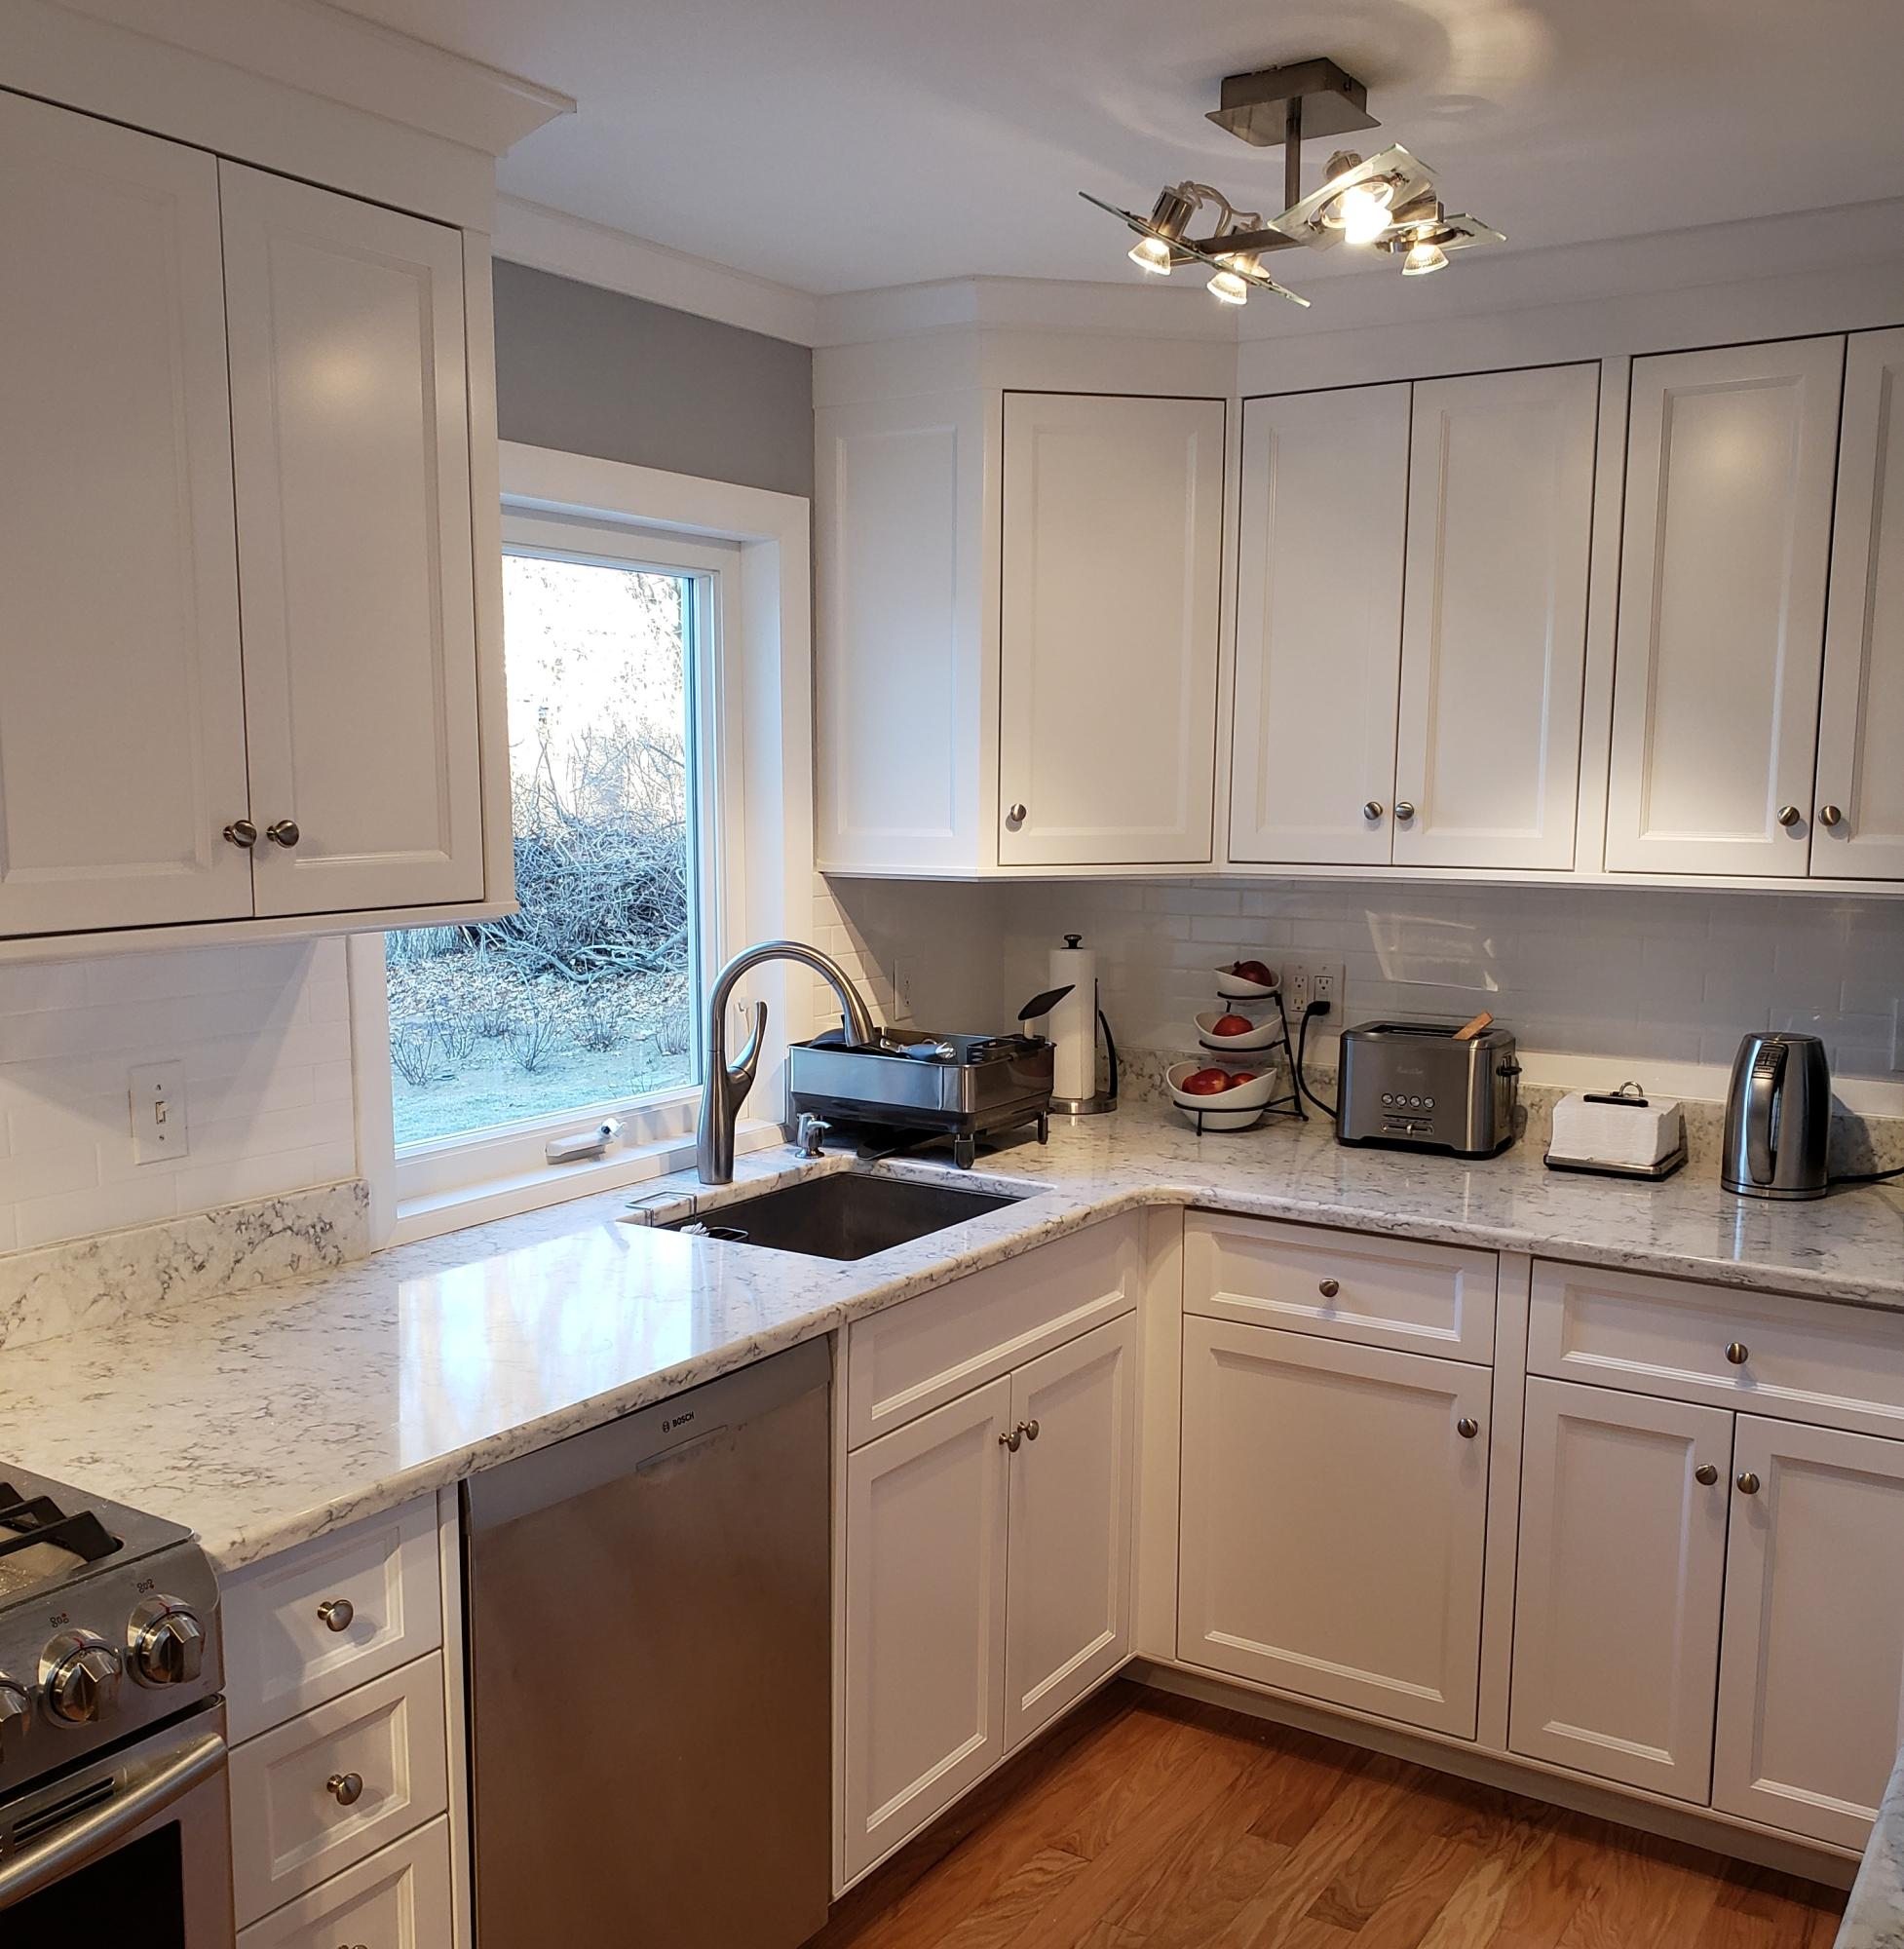 Kitchen Cpr The Custom Alternative To Replacing Or Painting Over Your Existing Cabinets Custom Cabinets And Solid Wood Resurfacing Blending Old And New